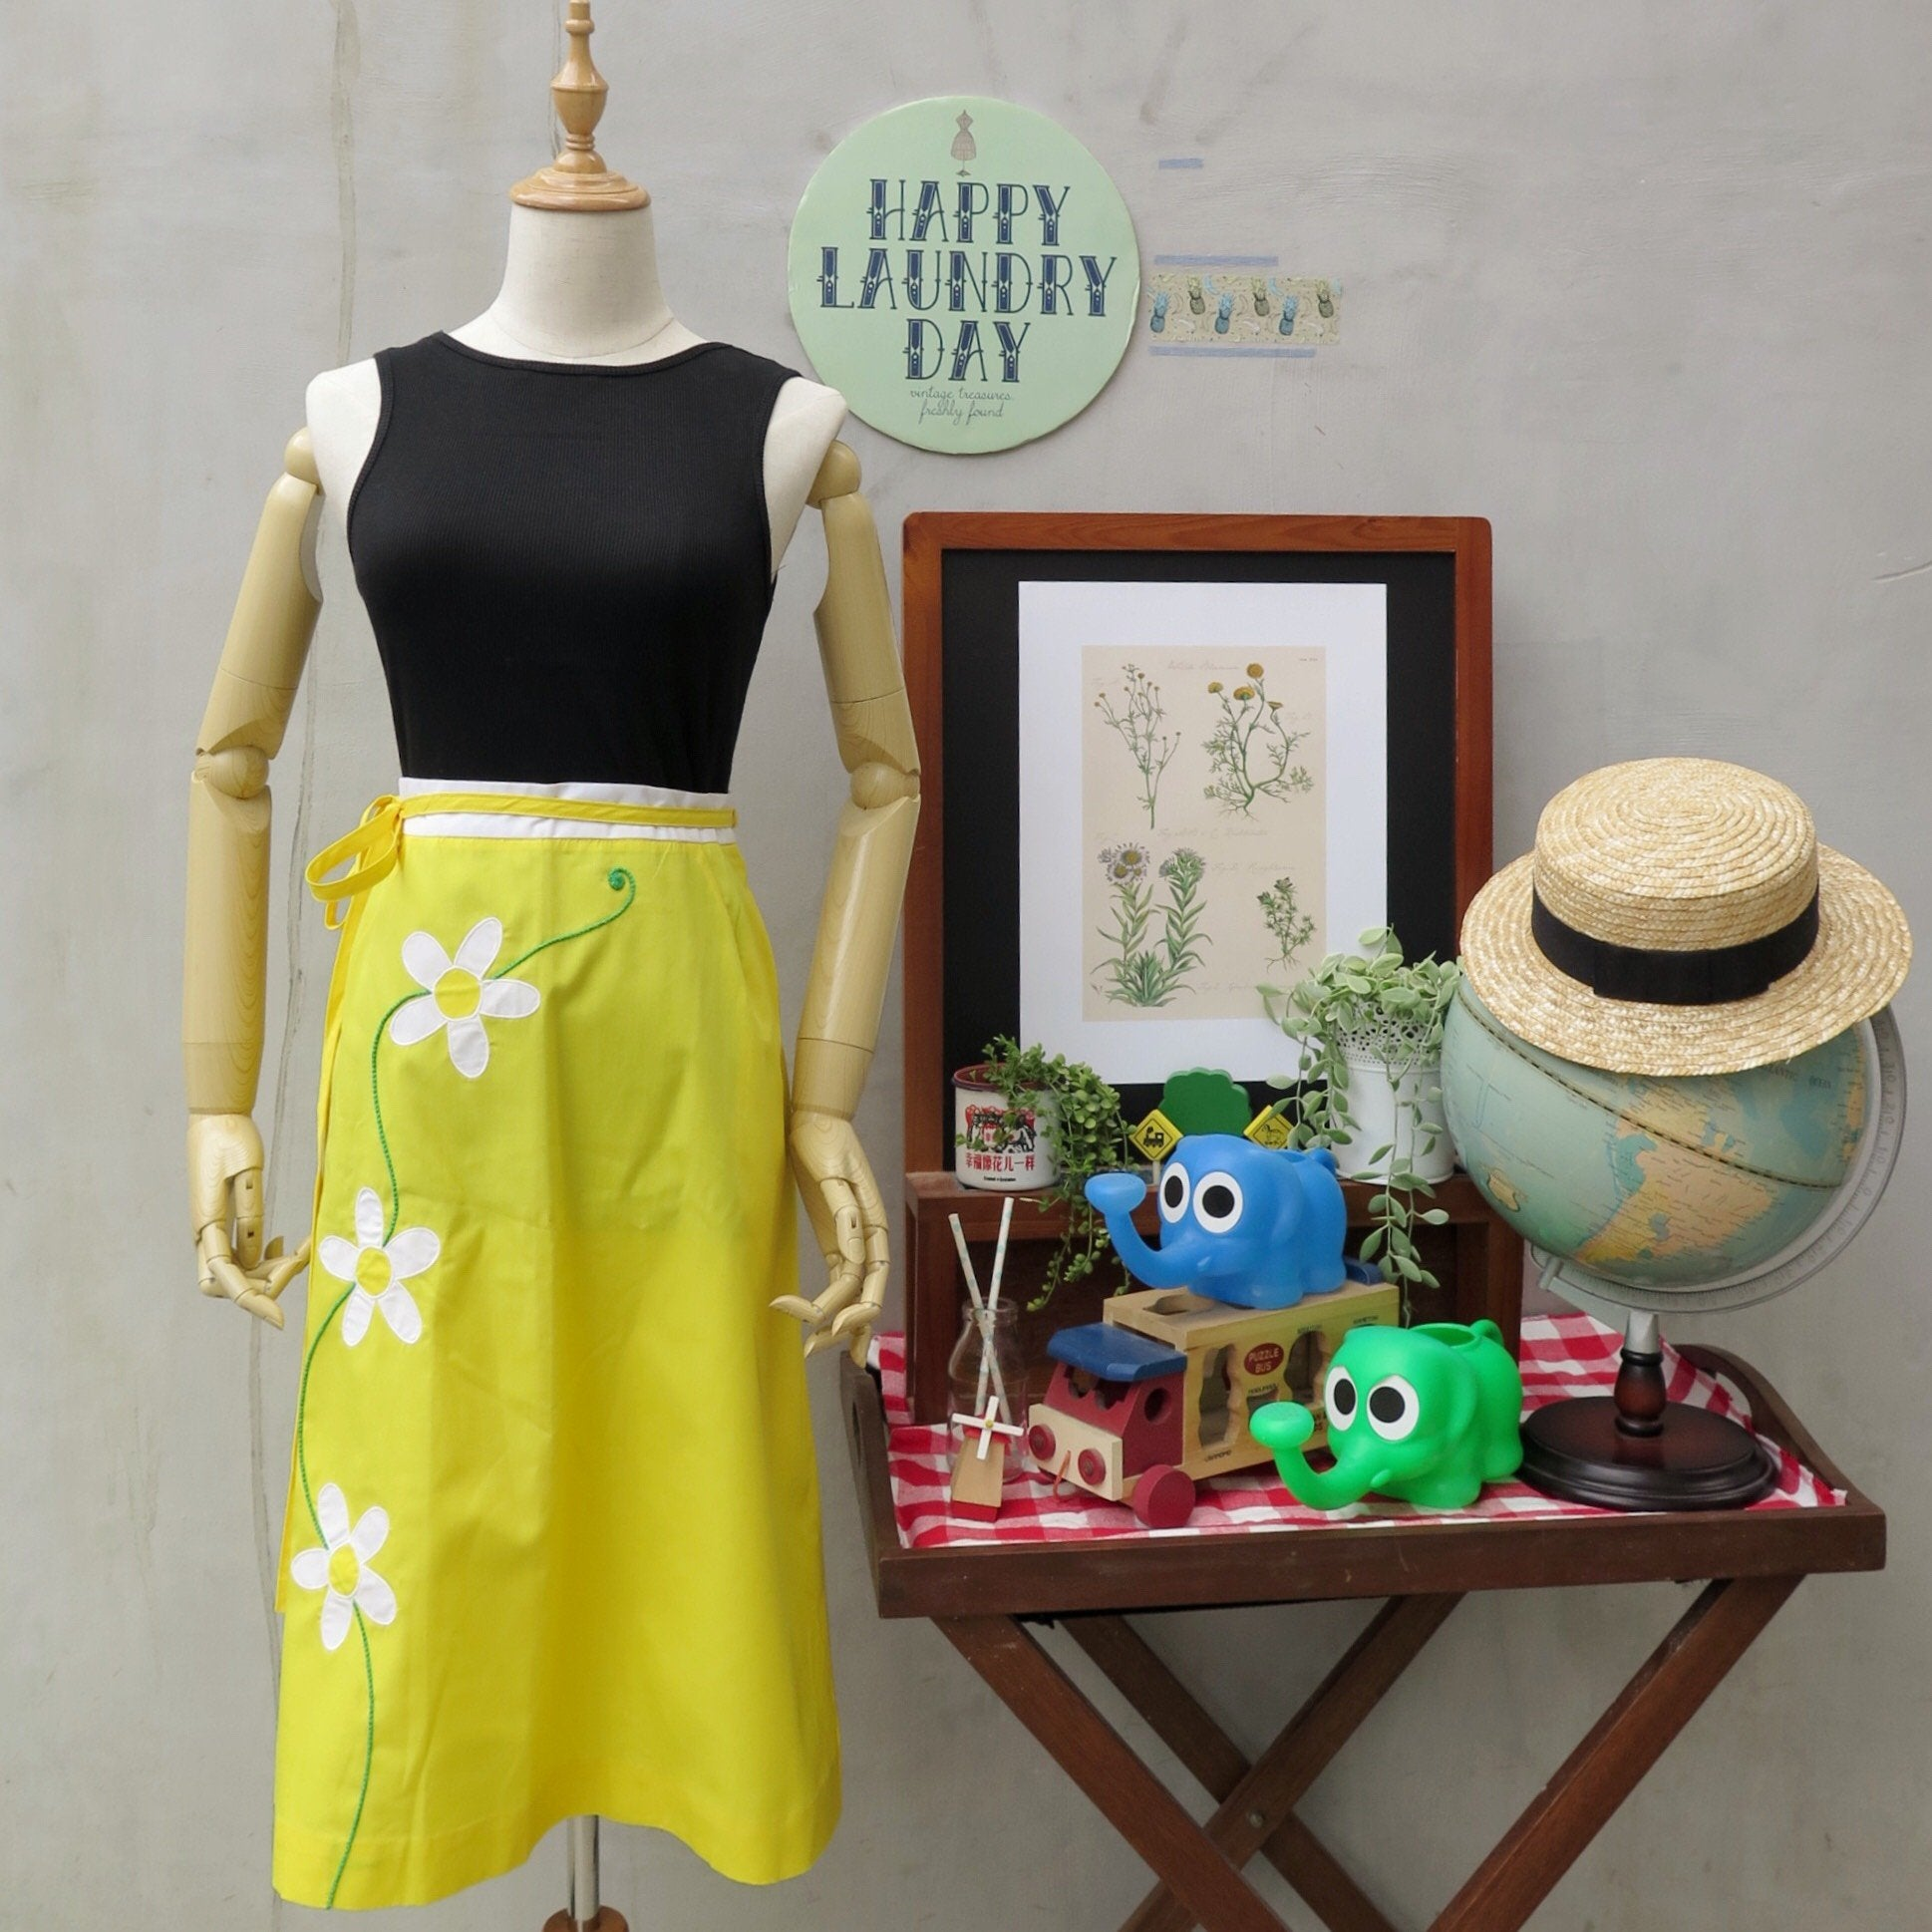 Buttercup | Vintage 1960s 1970s Daisy appliqué Wrap skirt with POCKETS!